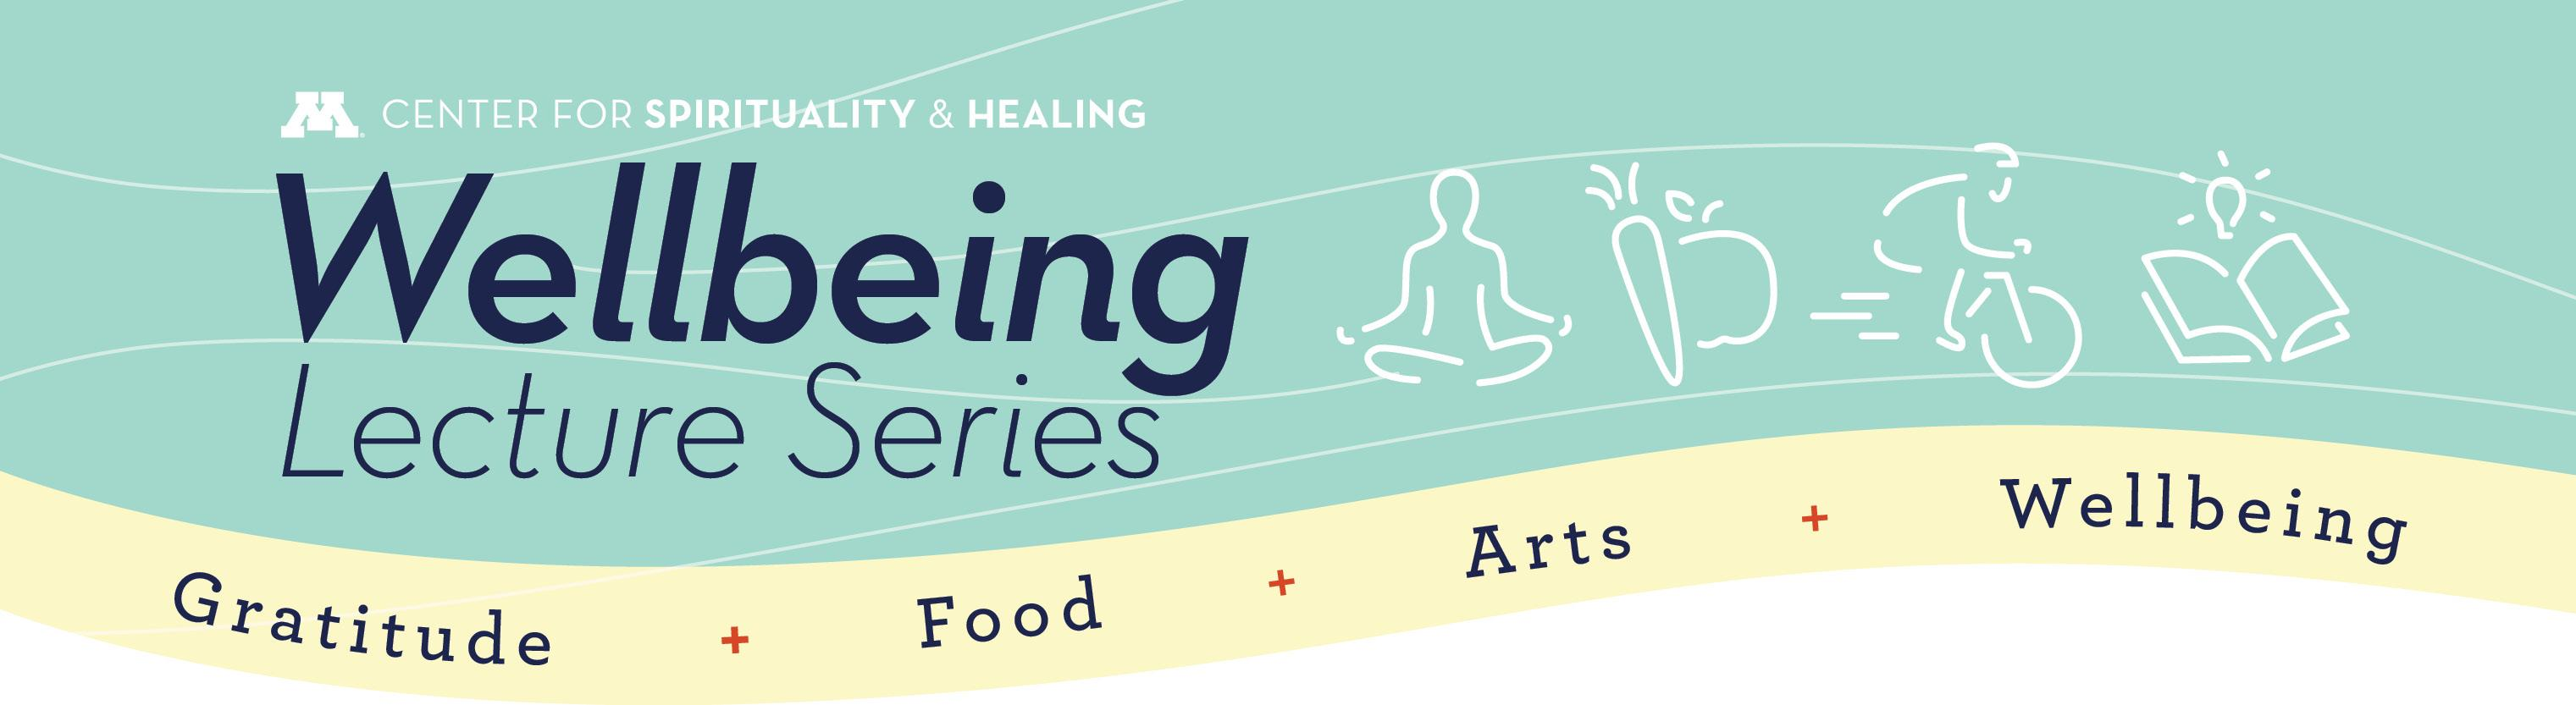 Wellbeing Lecture Series 2017 • Gratitude, Food, Purpose, Wellbeing